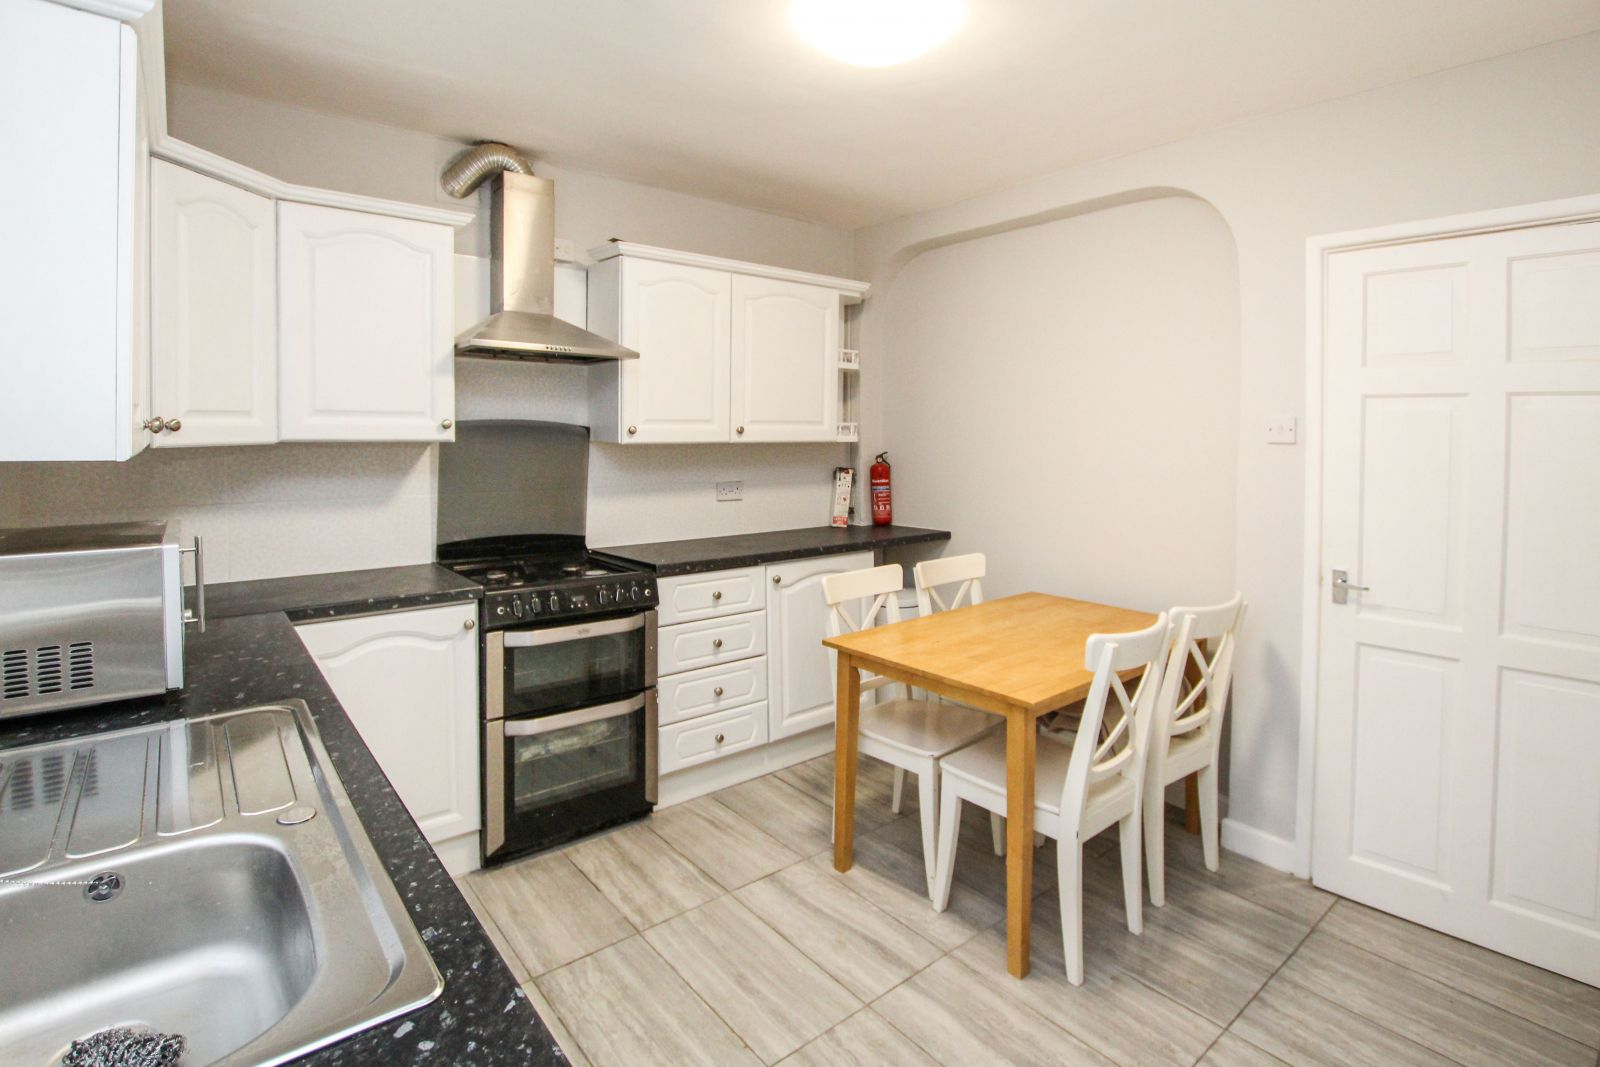 Property photo 1 of 14. Hermitage Road, Loughborough University, Le11 4Pa - Stunning Four Bedroom